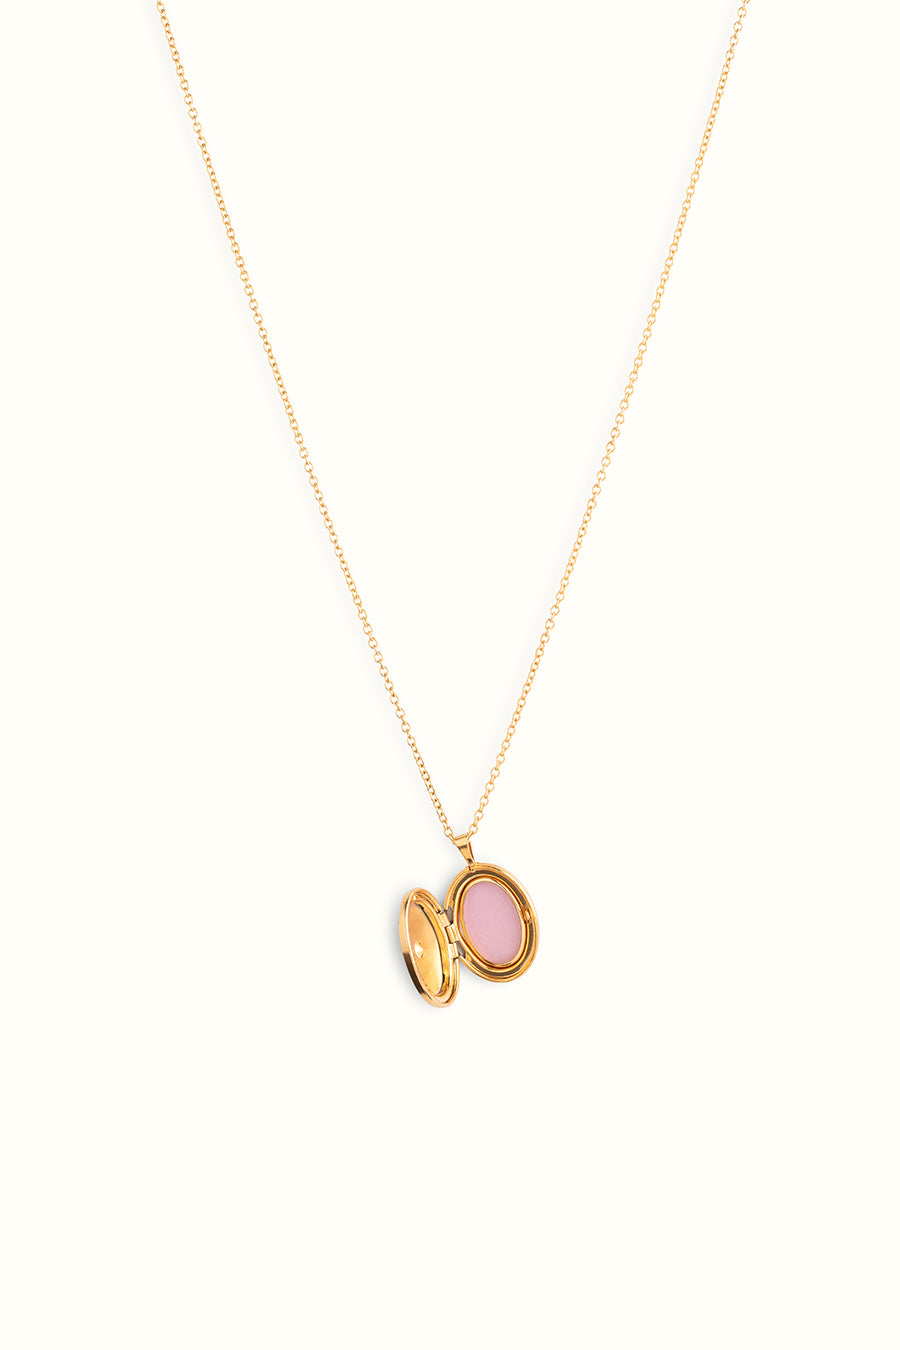 a golf filled necklace with a golden opened locket pendant on a white background